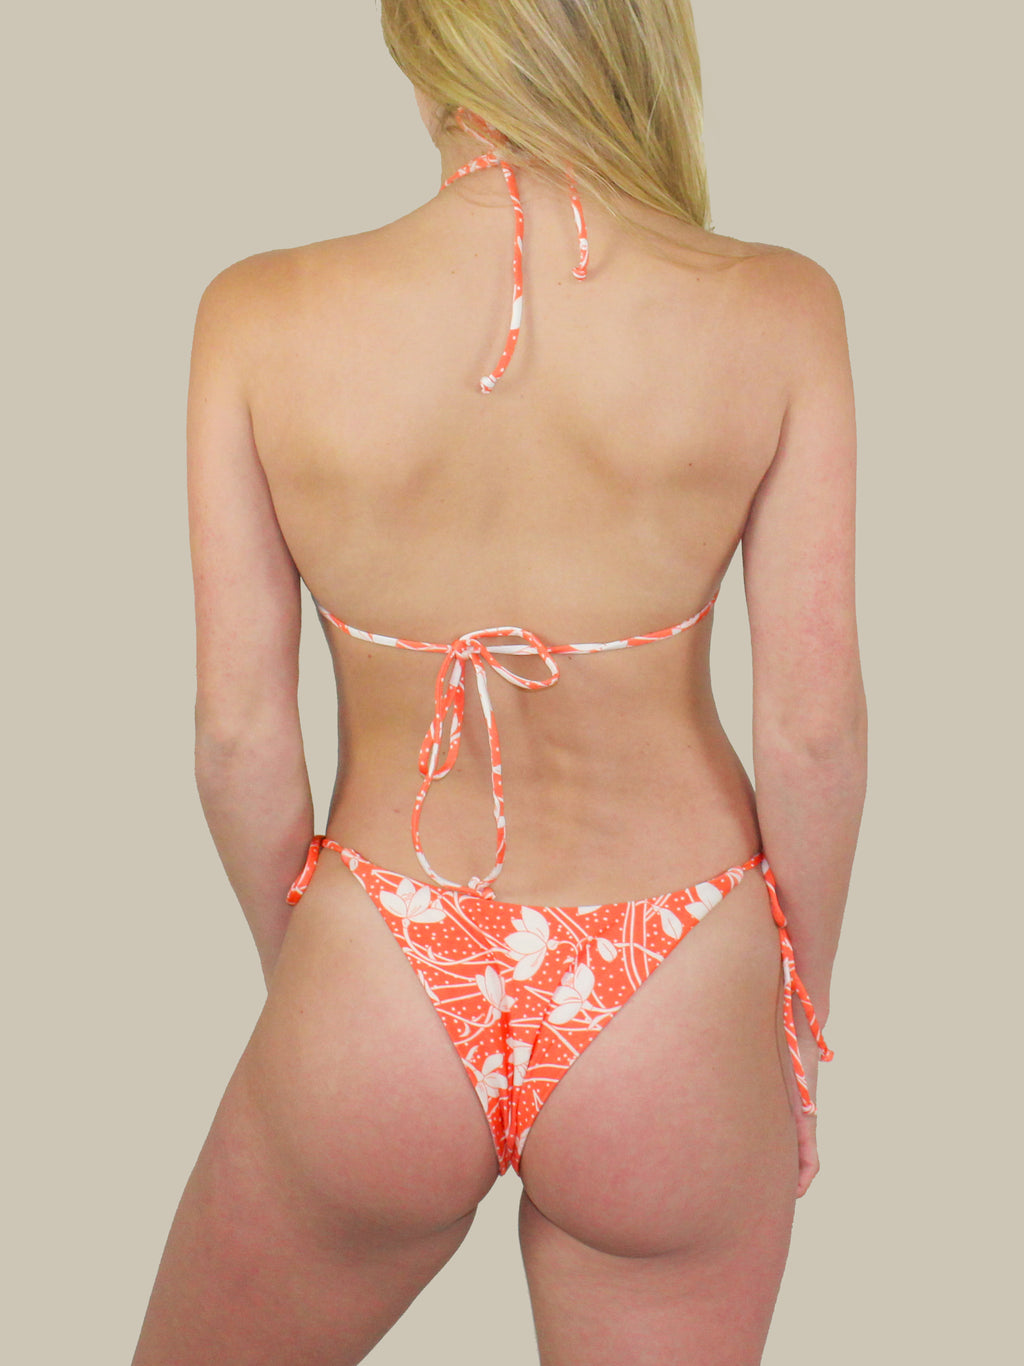 Stone Fox Swim Karu Bottom (Vintage Iris)